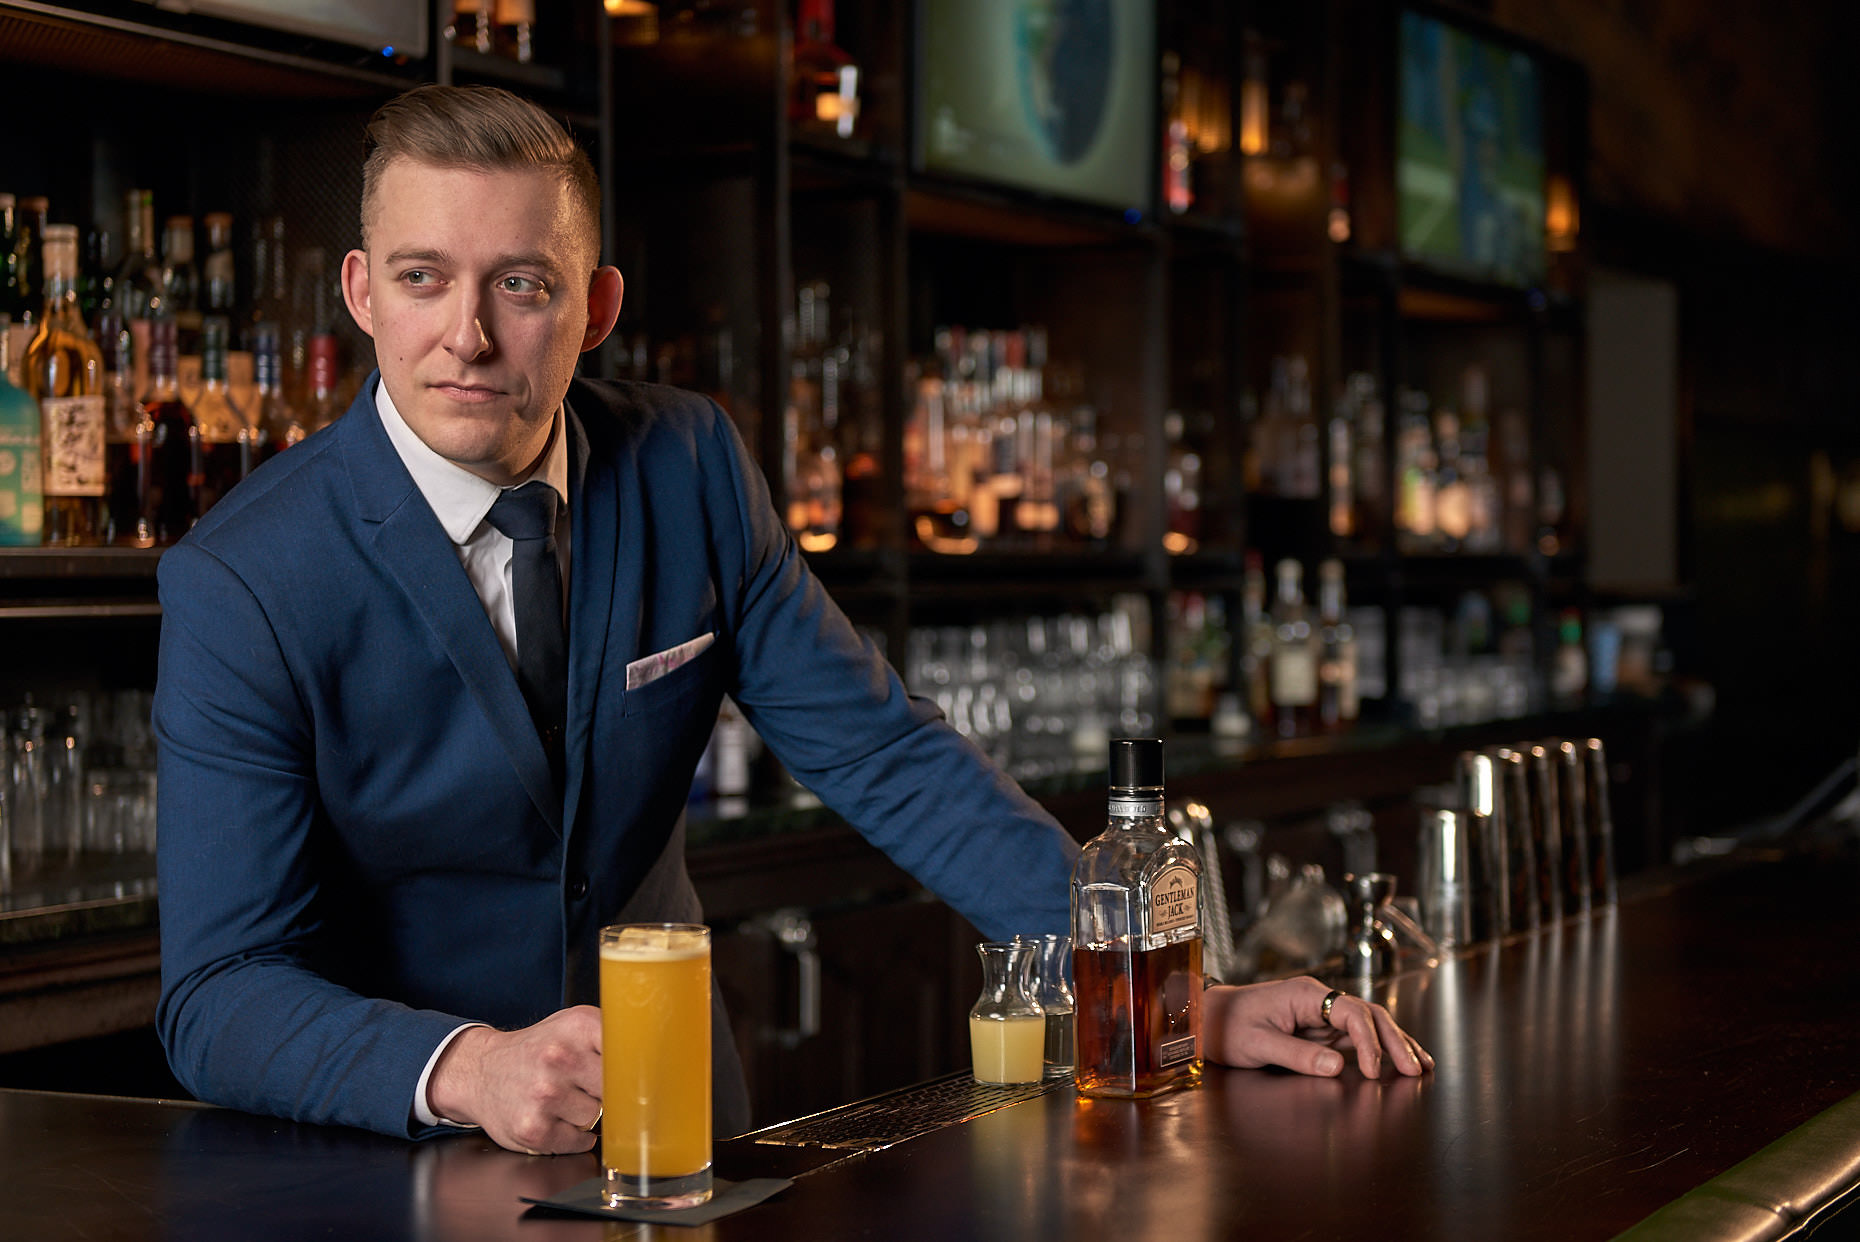 Jason Tracy - Edtorial Photographer Kansas City - Savoy Hotel & Restaurant Beverage Coordinator Dominic Petrucci